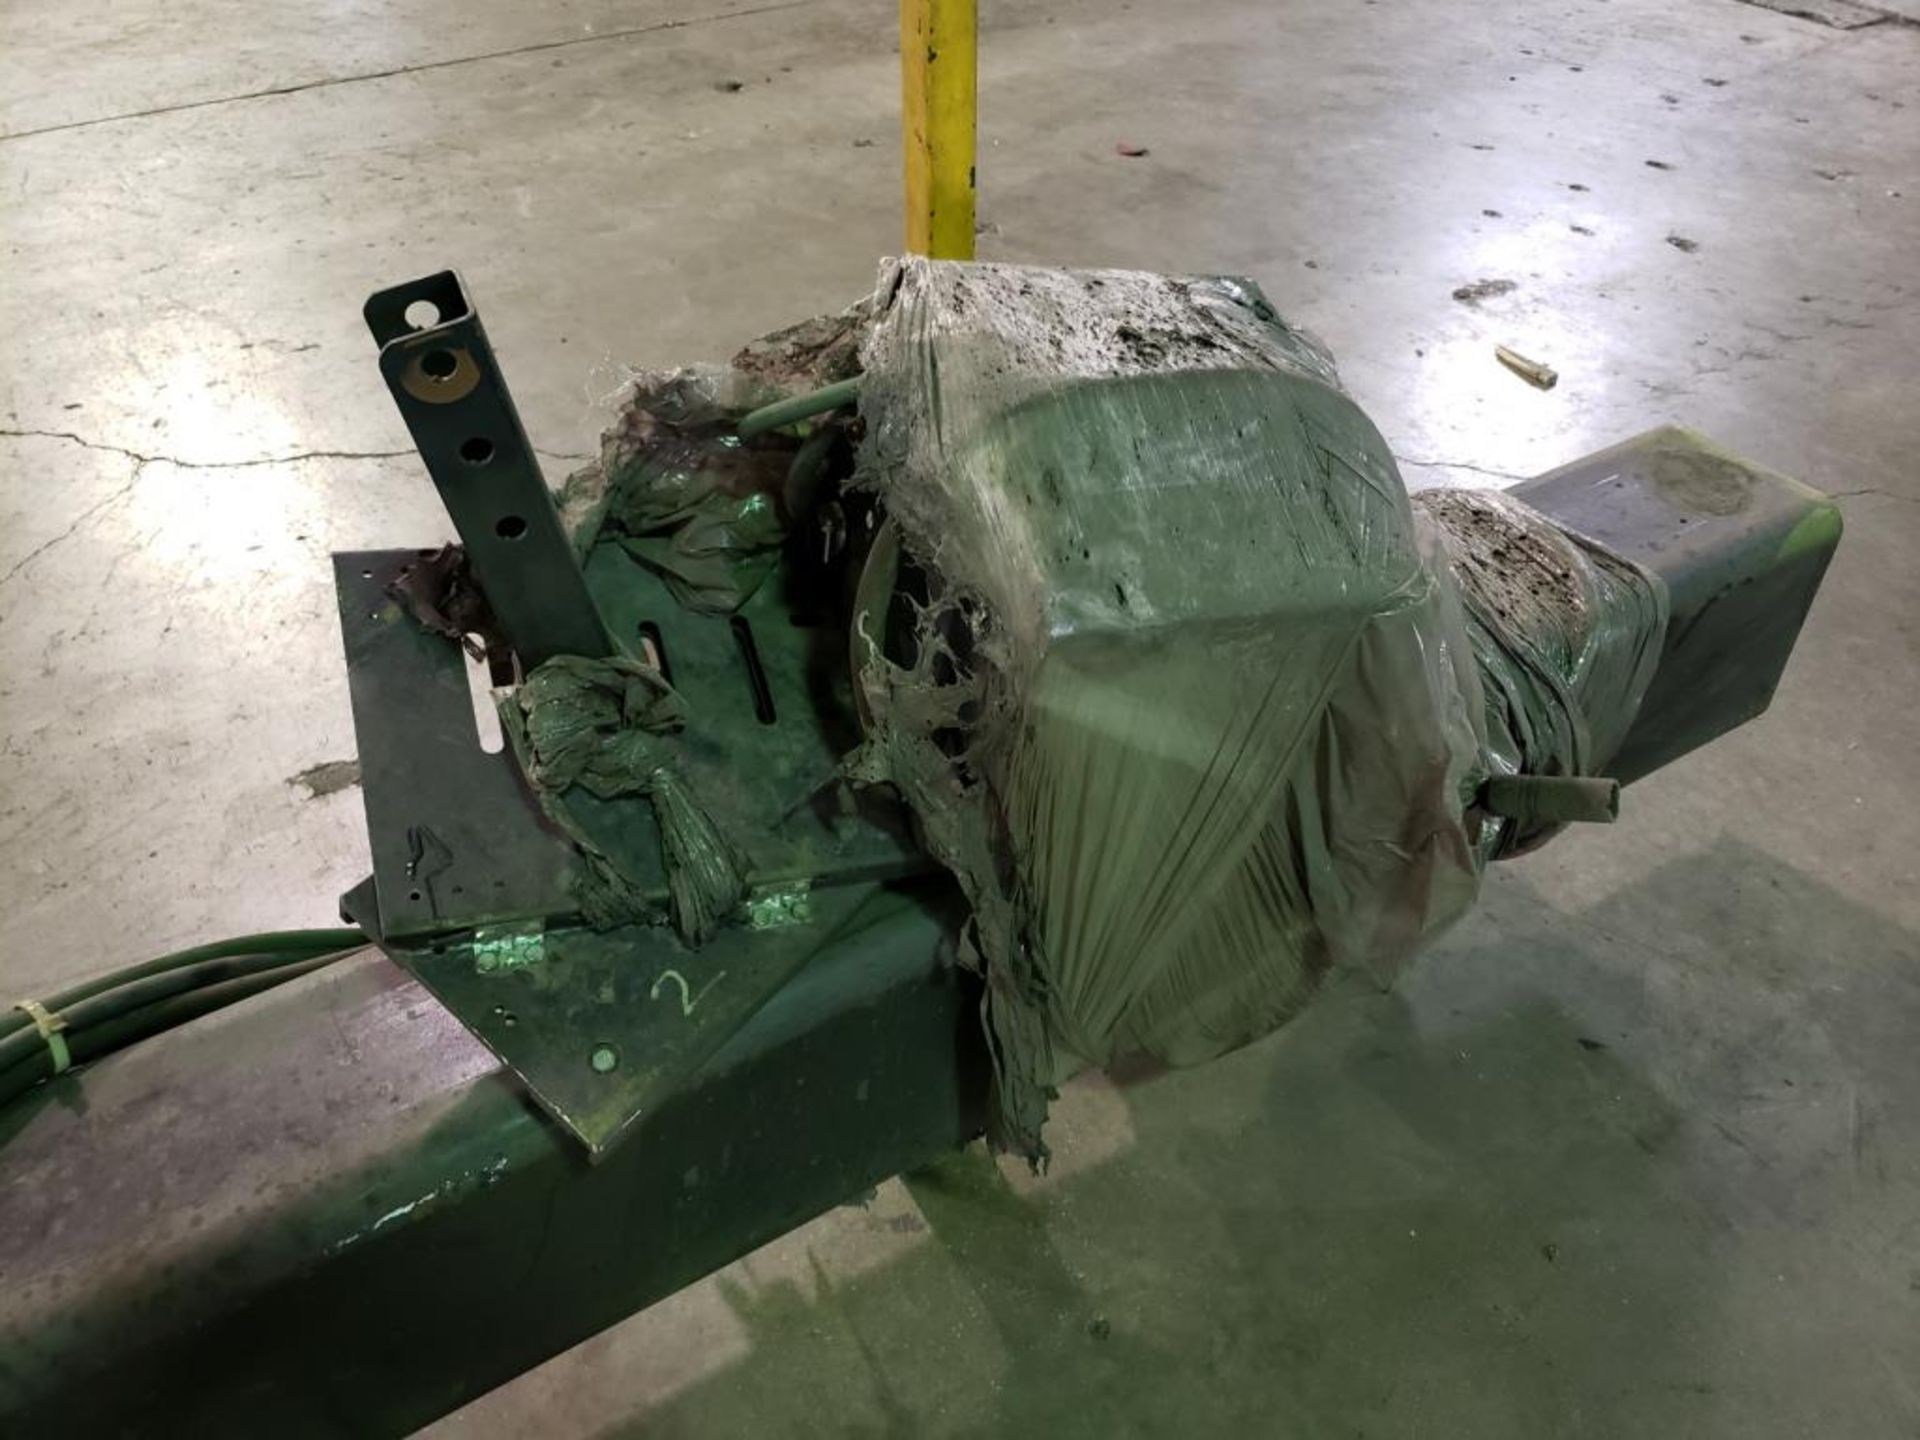 Lot 122 - Torch Cutting System